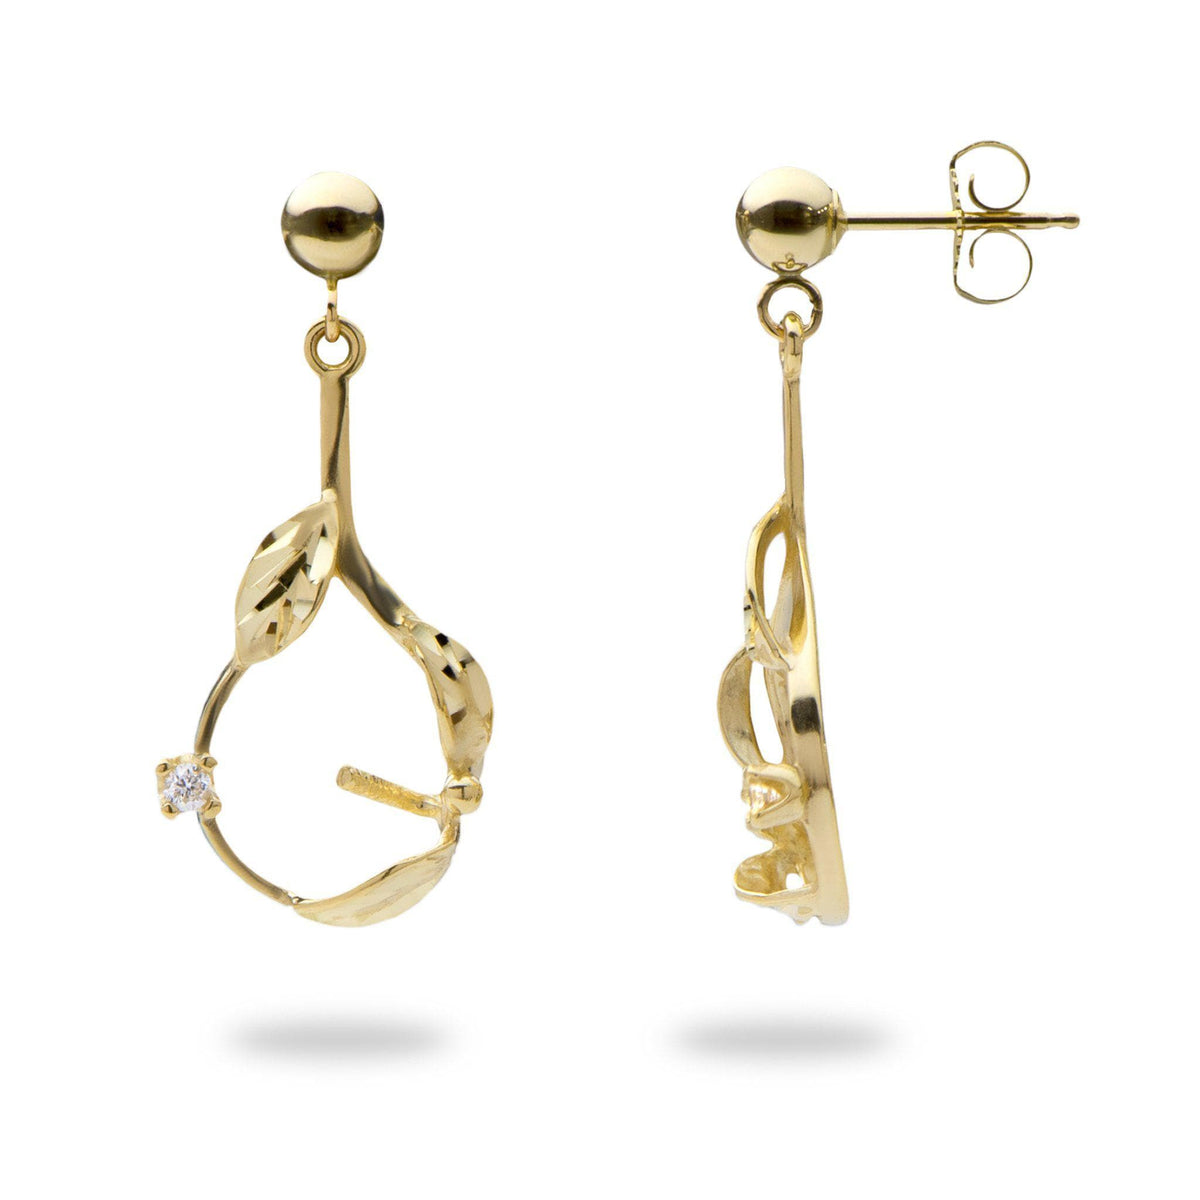 Maile Leaves Earrings Mounting with Diamonds in 14K Yellow Gold-[SKU]